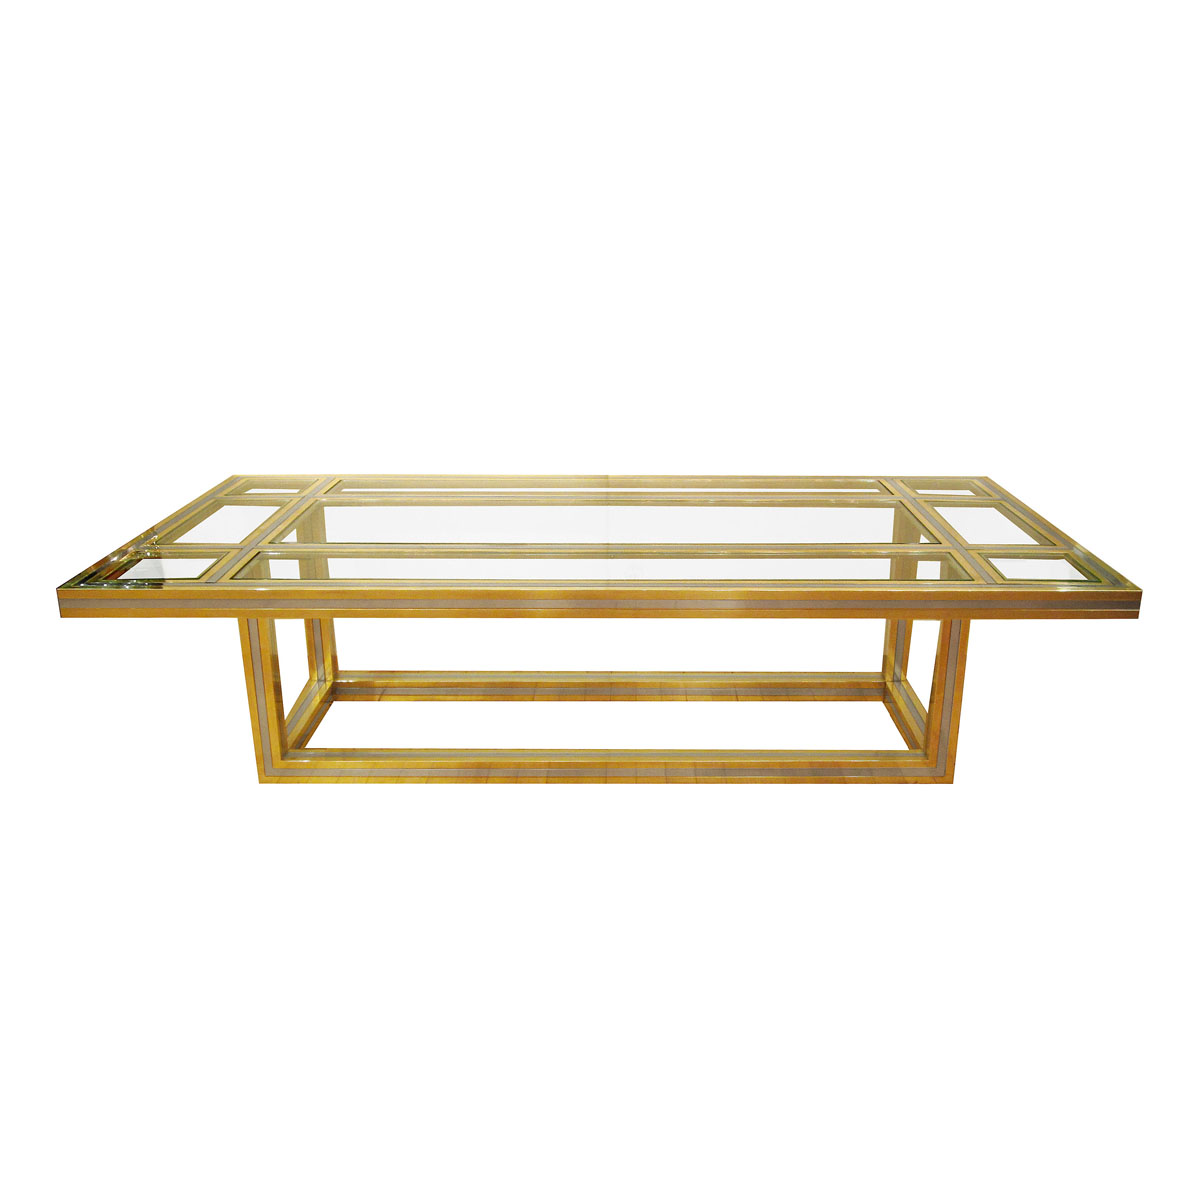 Brass And Stainless Steel Coffee Table With Glass Insets